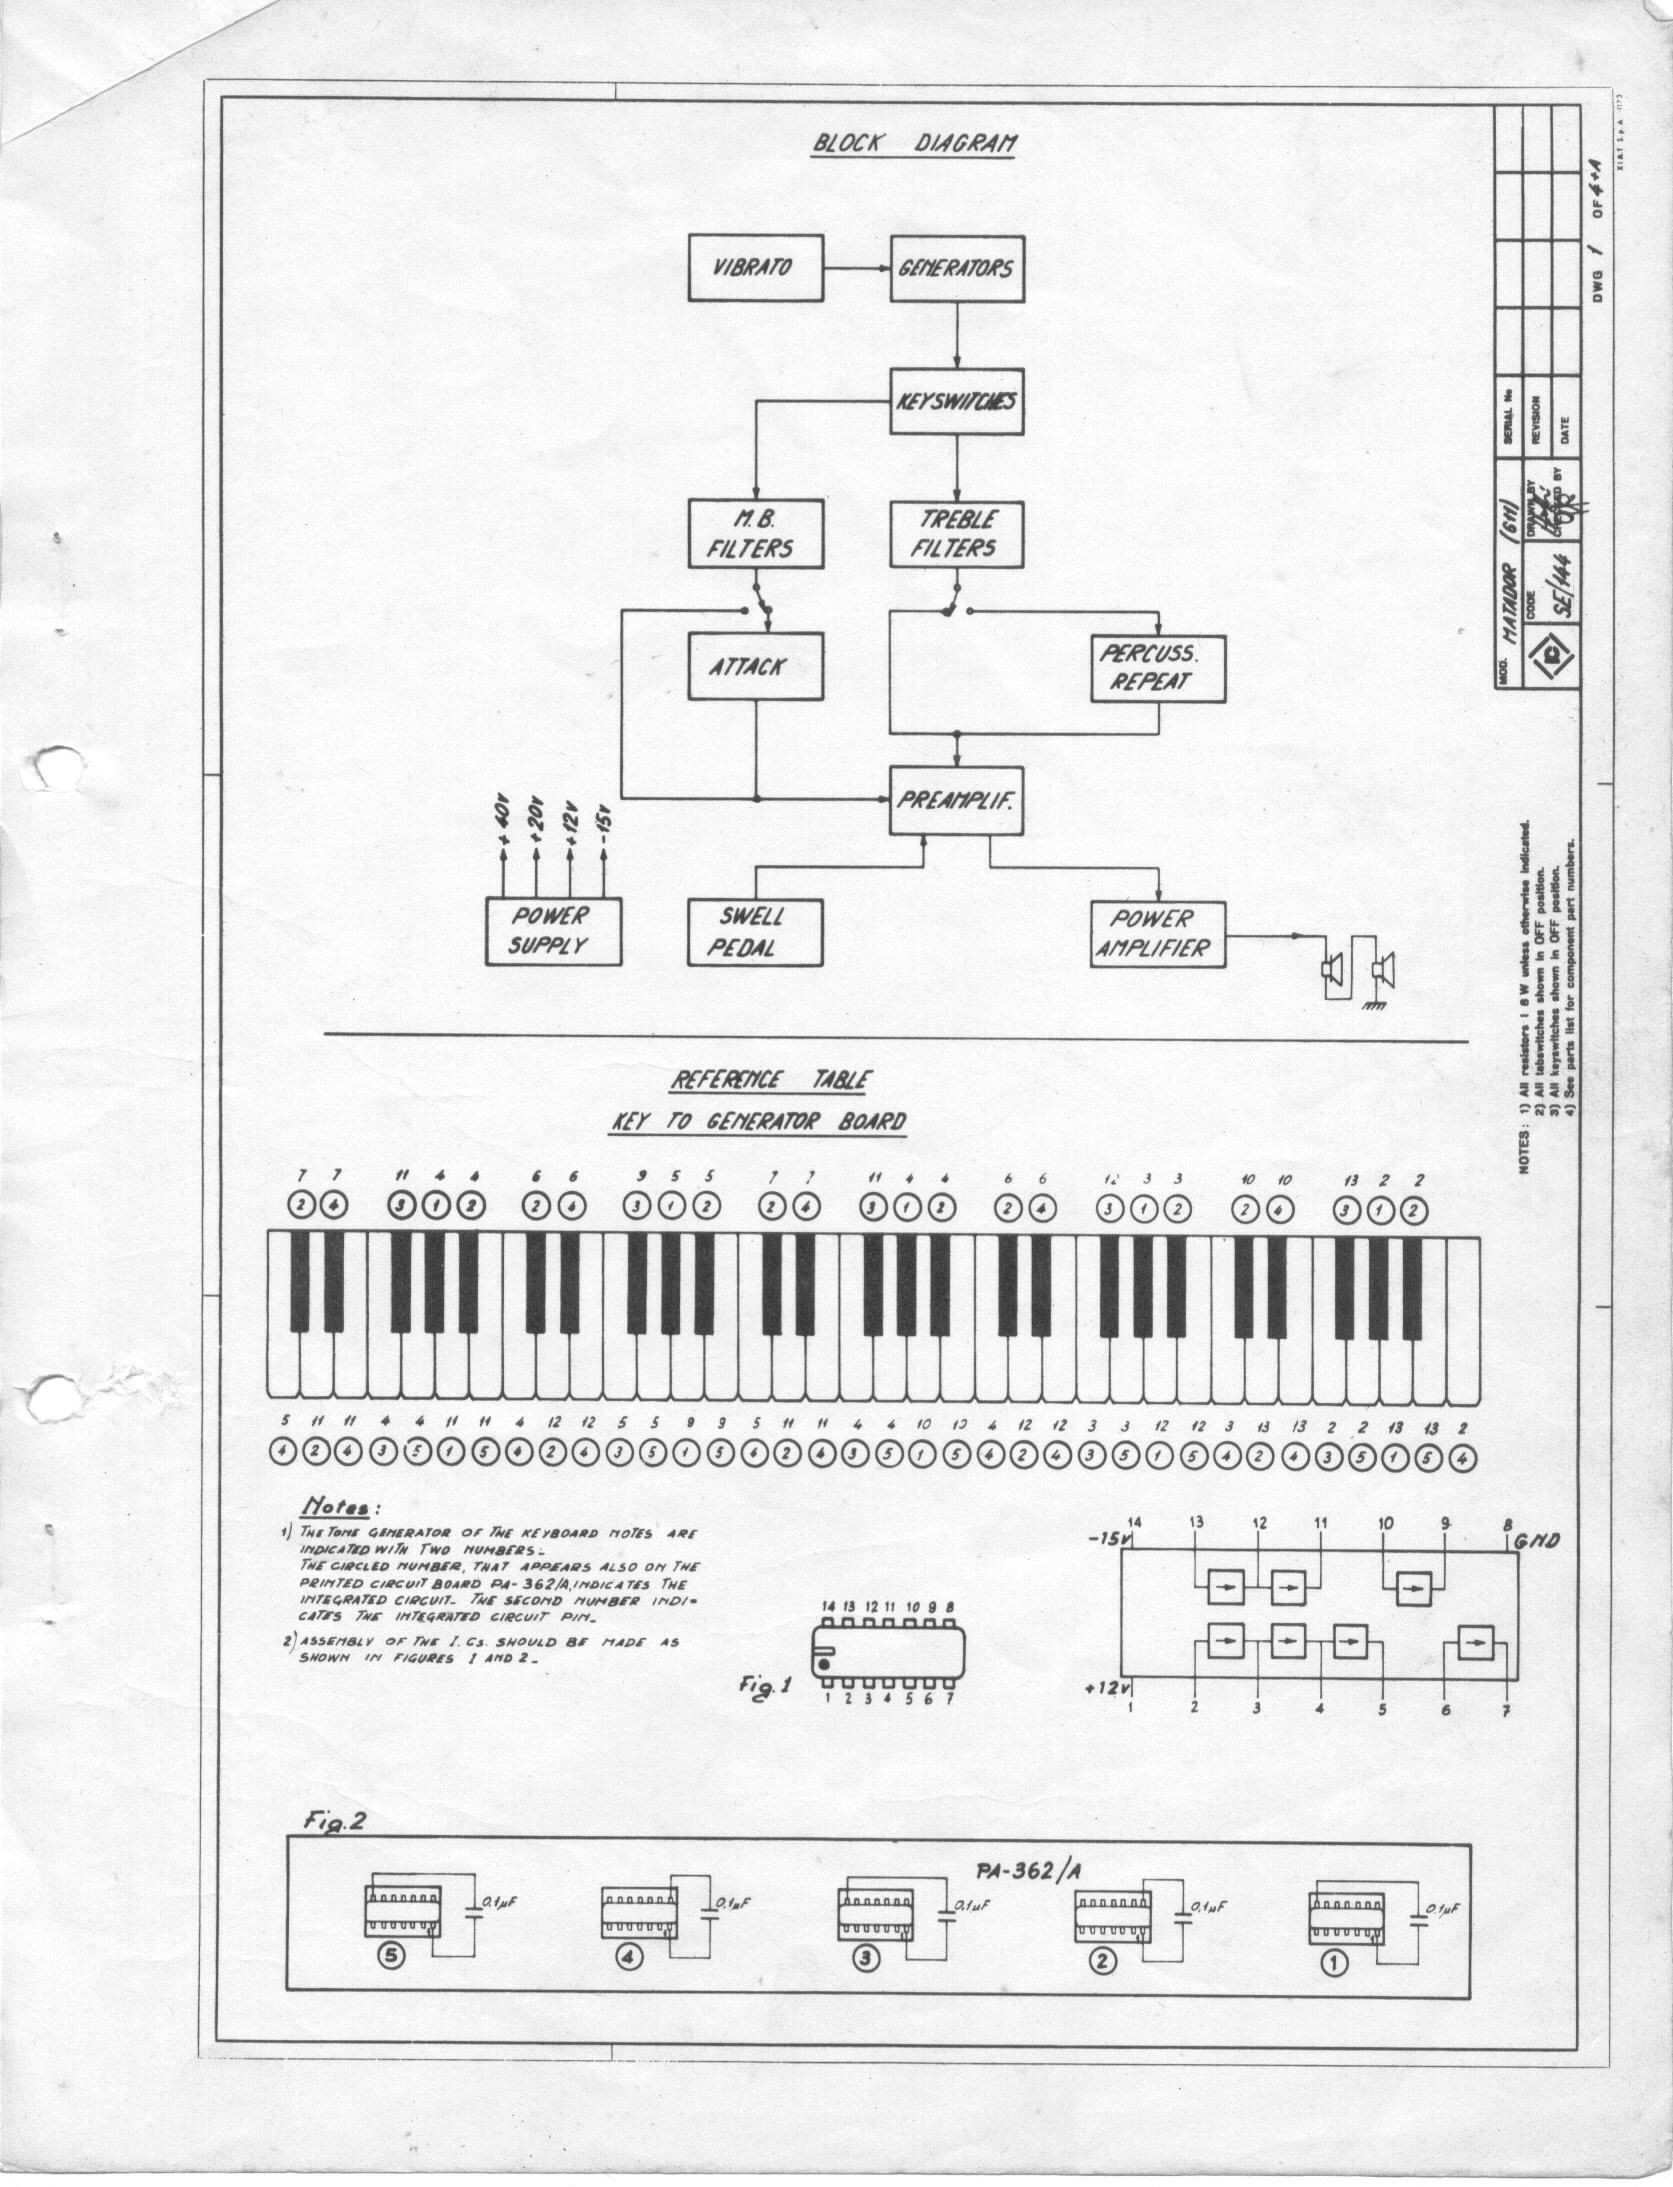 Enjoyable Schematics Archives Farfisa Org Wiring Digital Resources Jebrpcompassionincorg